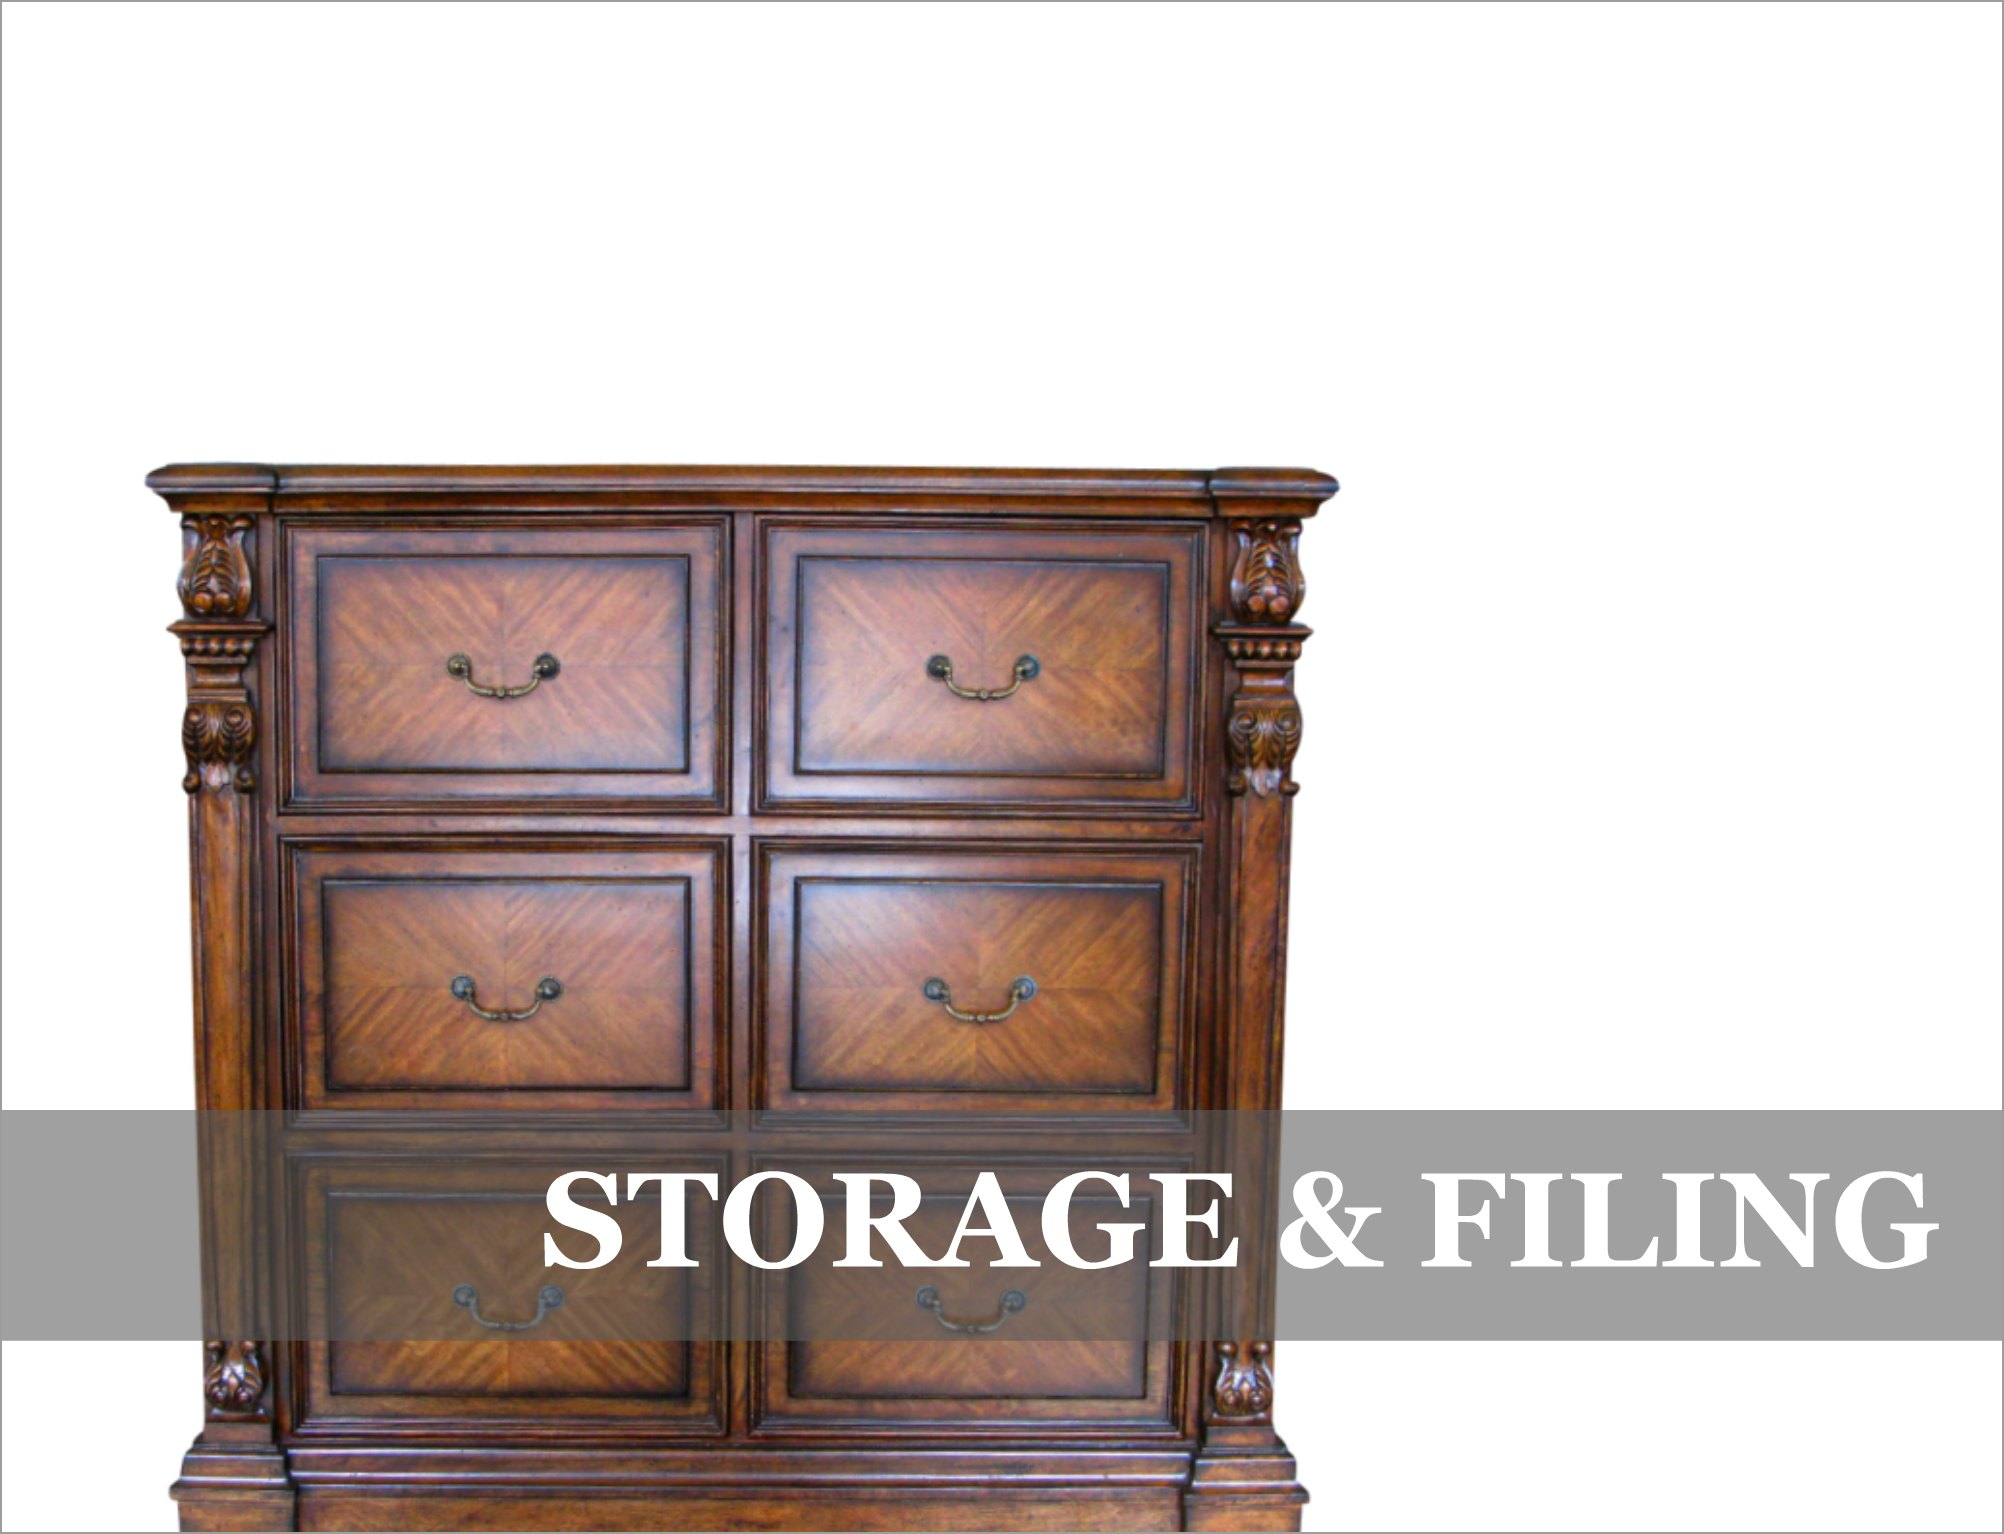 French Provincial Office Storage Furniture